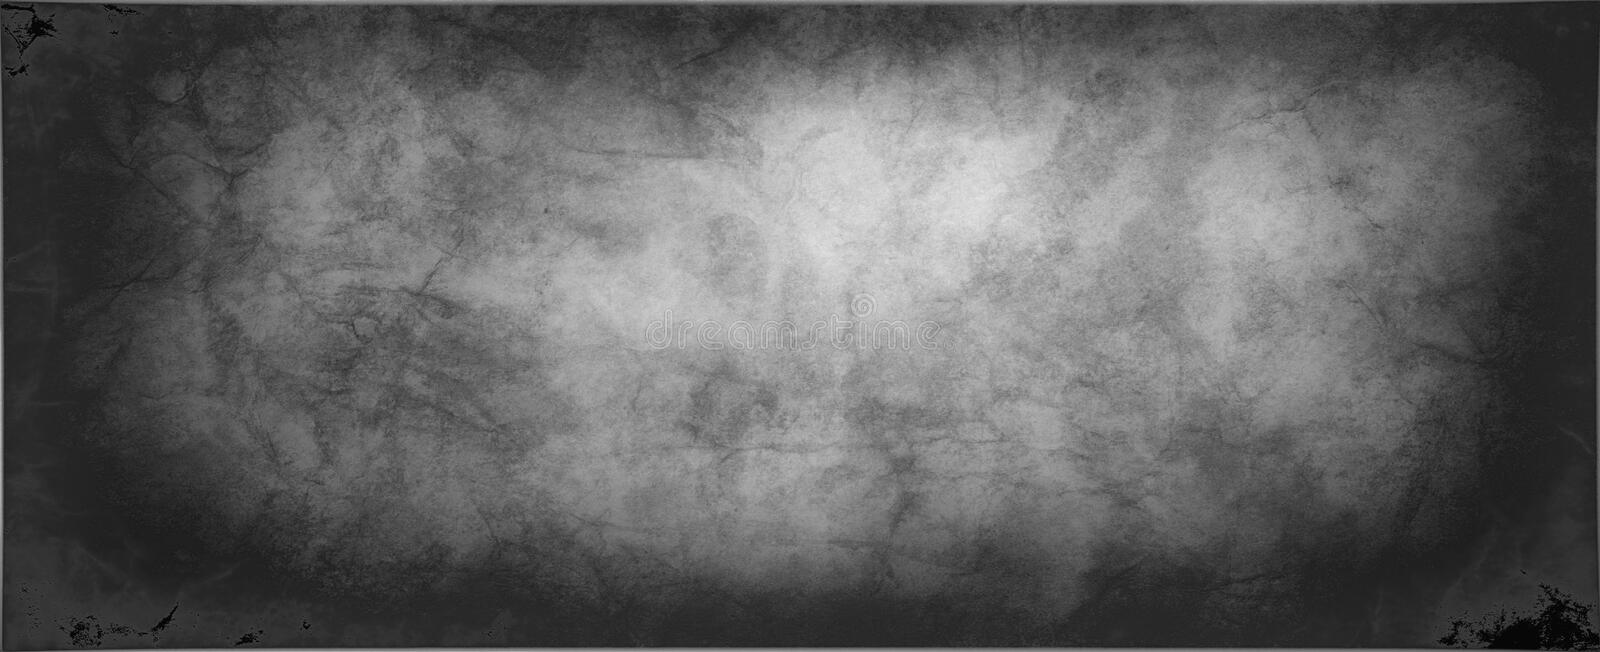 Black and white background with abstract marbled texture design with worn aged cracks and crumpled paper lines in old grainy textu vector illustration